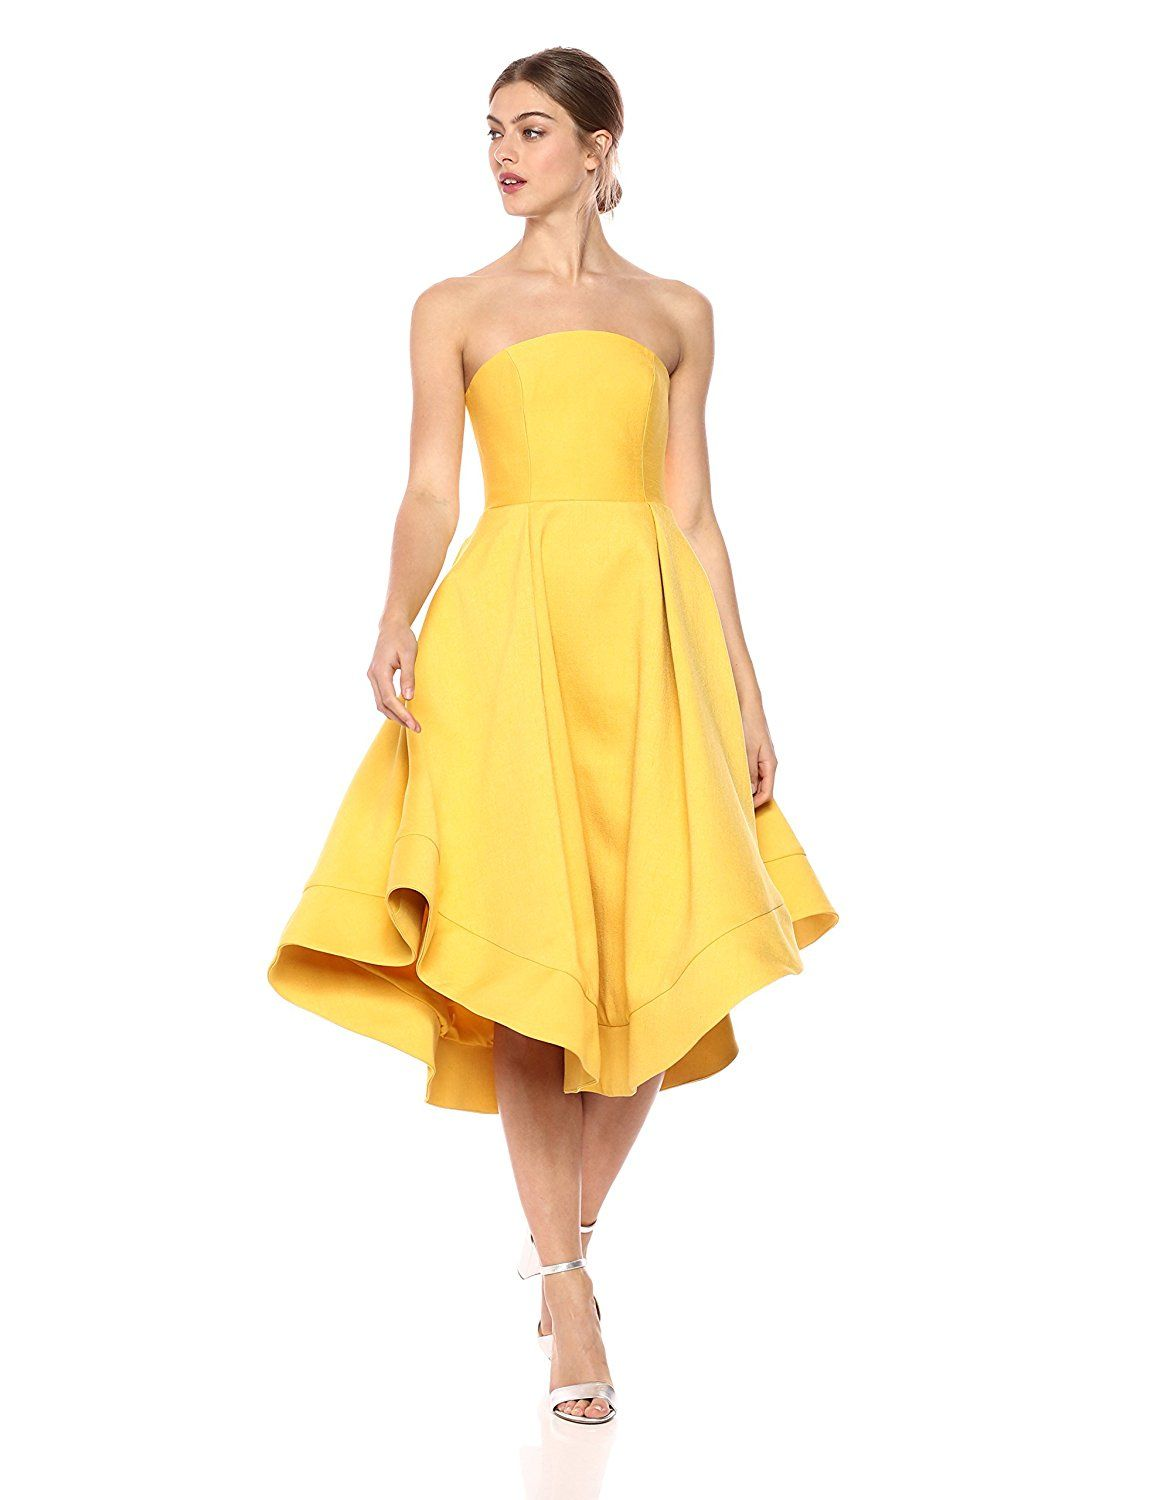 10 Best Wedding Guest Dresses For Summer 2018 Stylish Dresses To